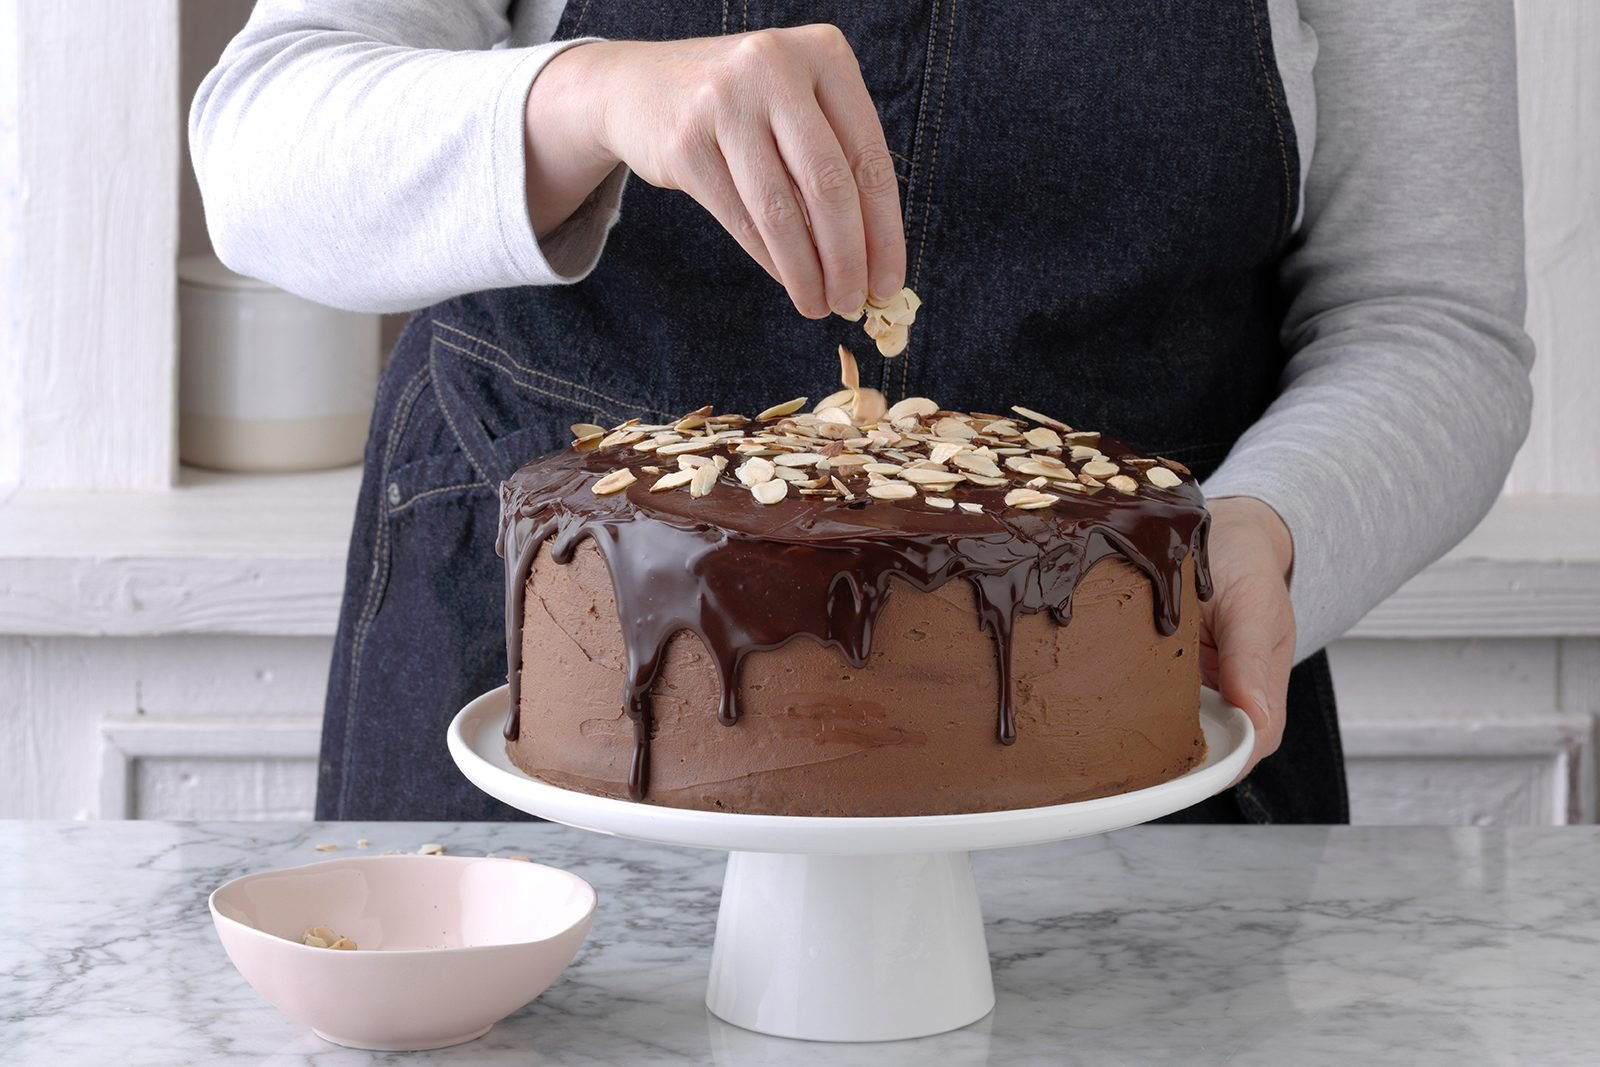 Topping chocolate ganache cake with almonds